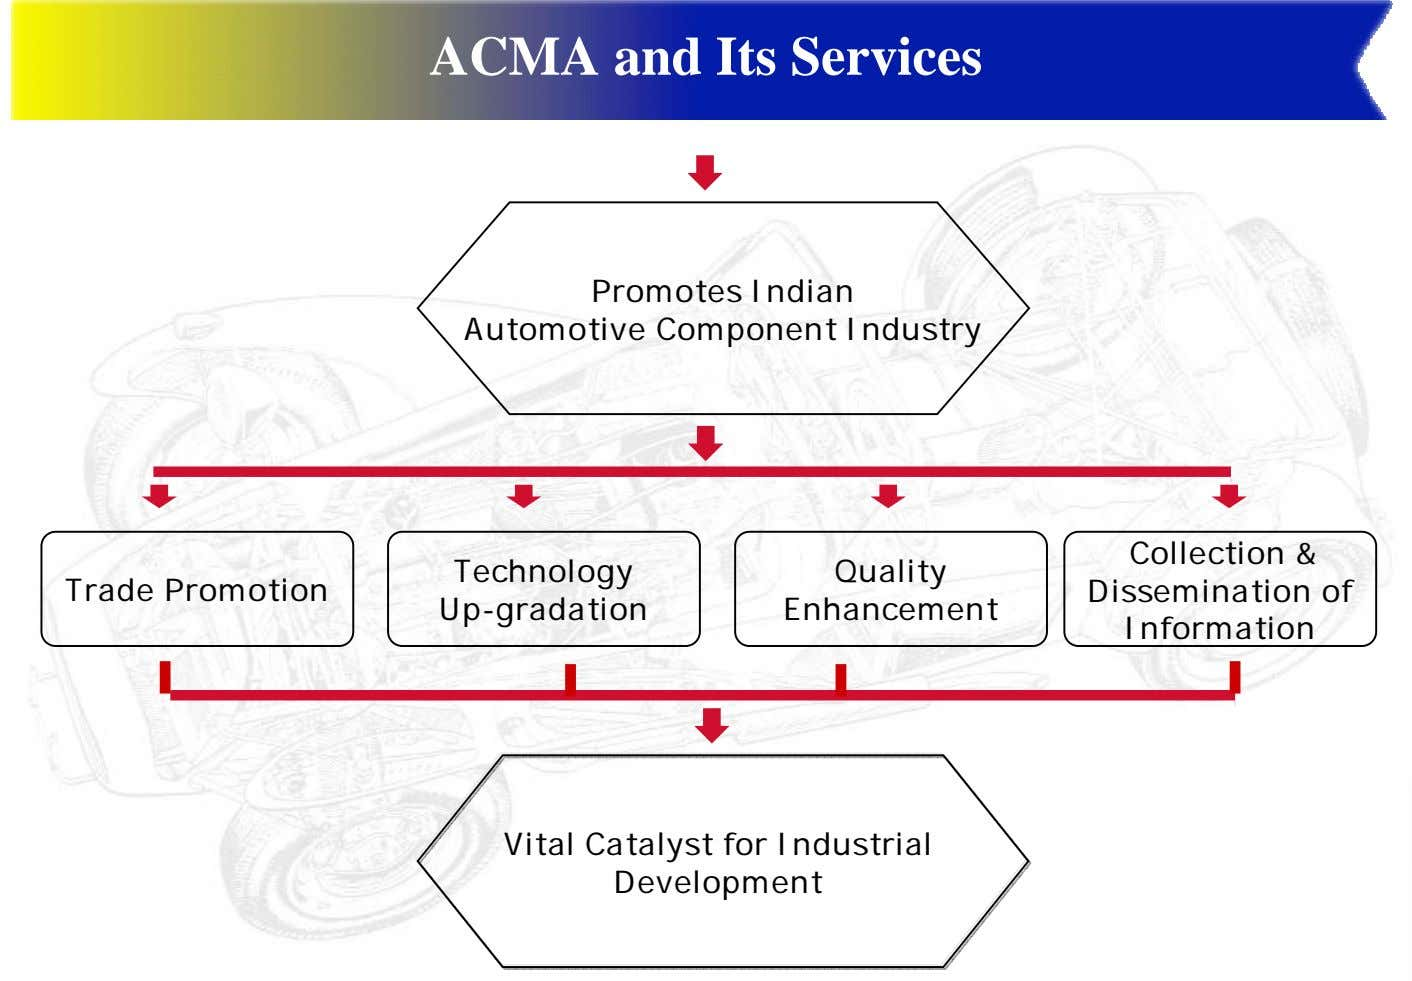 ACMA and Its Services Promotes Indian Automotive Component Industry Technology Quality Trade Promotion Up-gradation